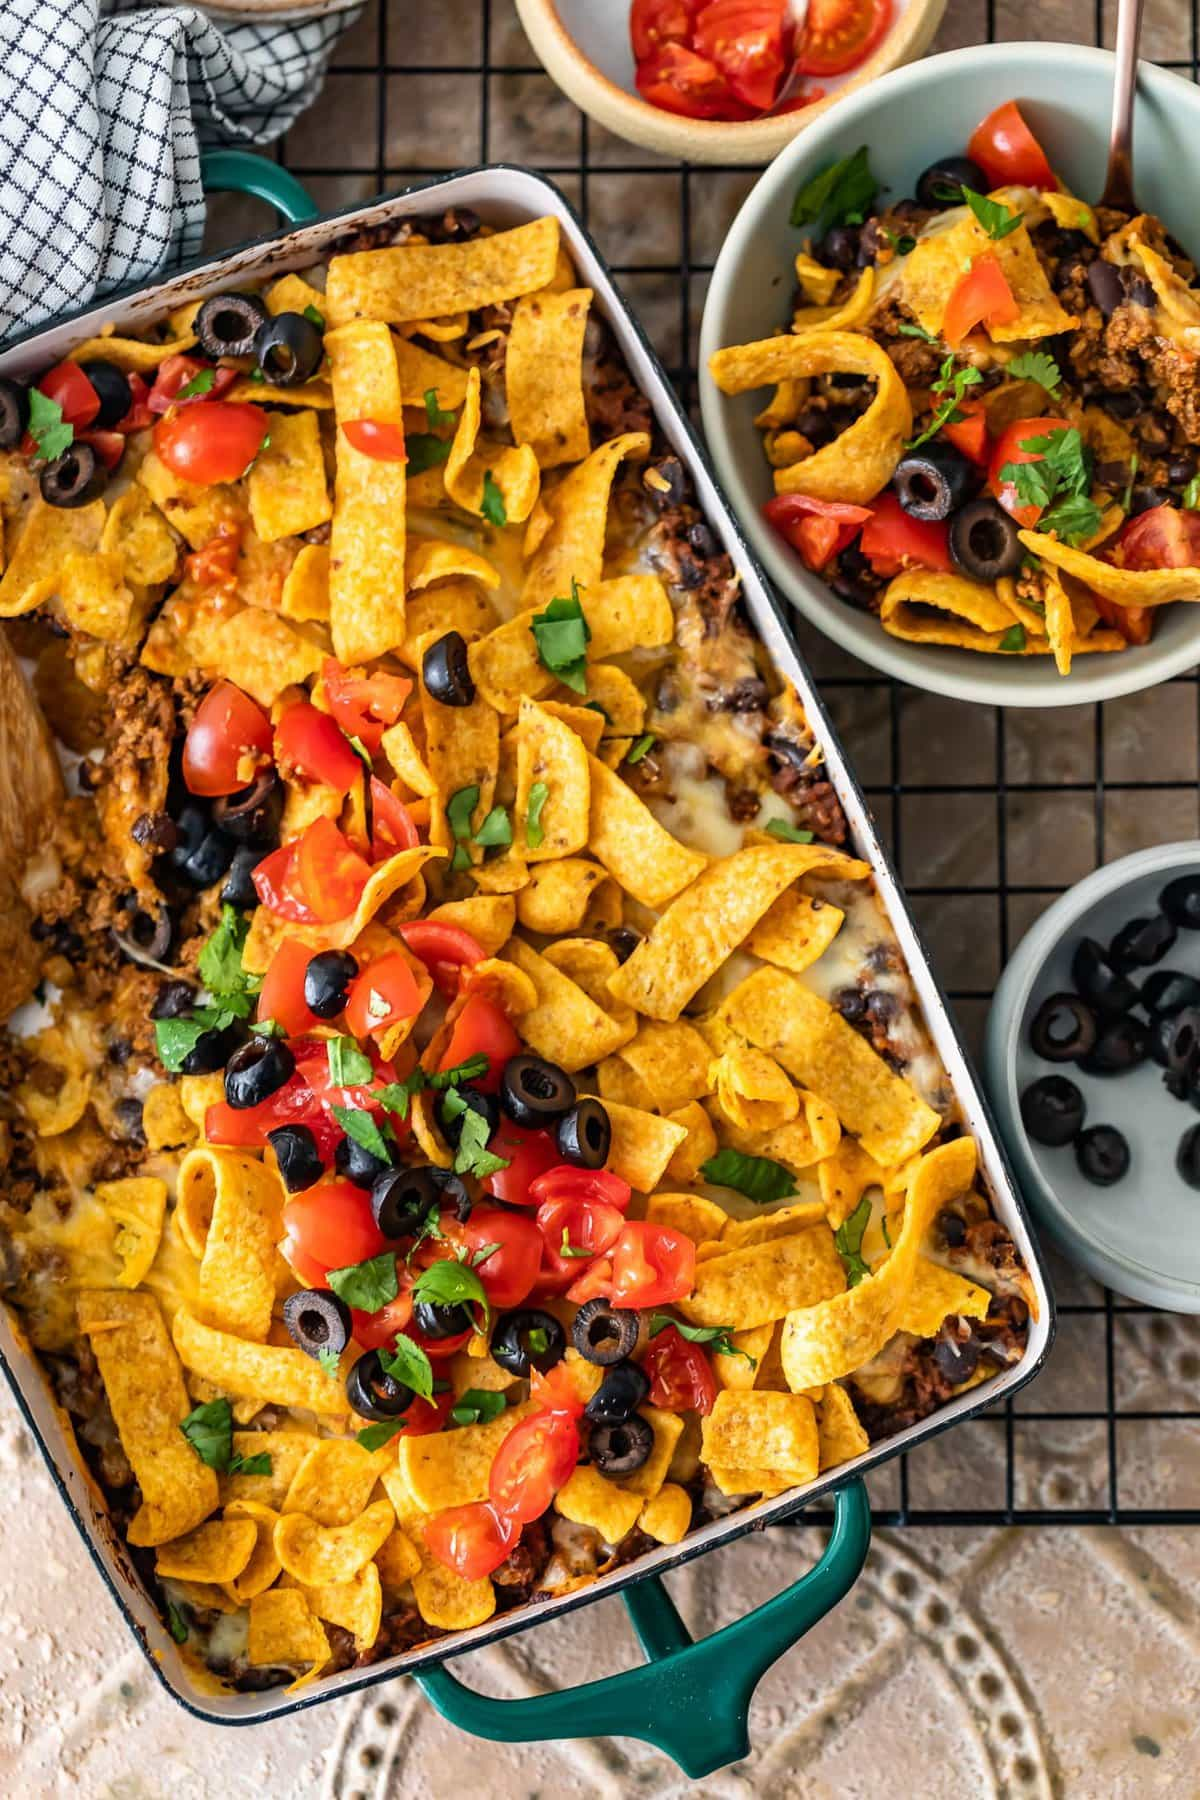 frito pie casserole next to a bowl of frito pie